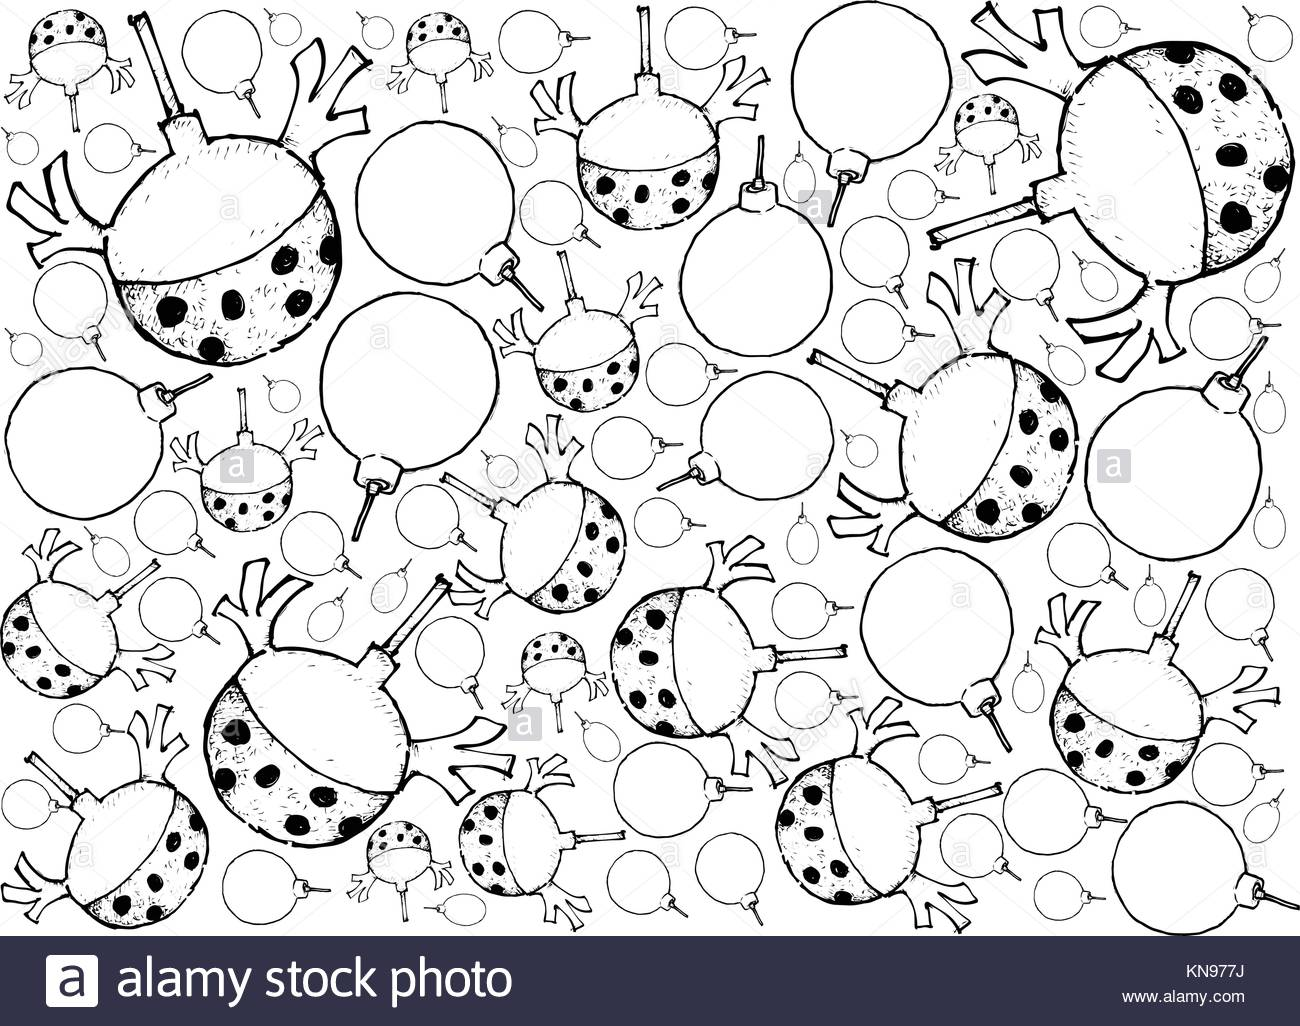 1300x1026 Background Illustration Hand Drawn Sketch Of Lovely Christmas